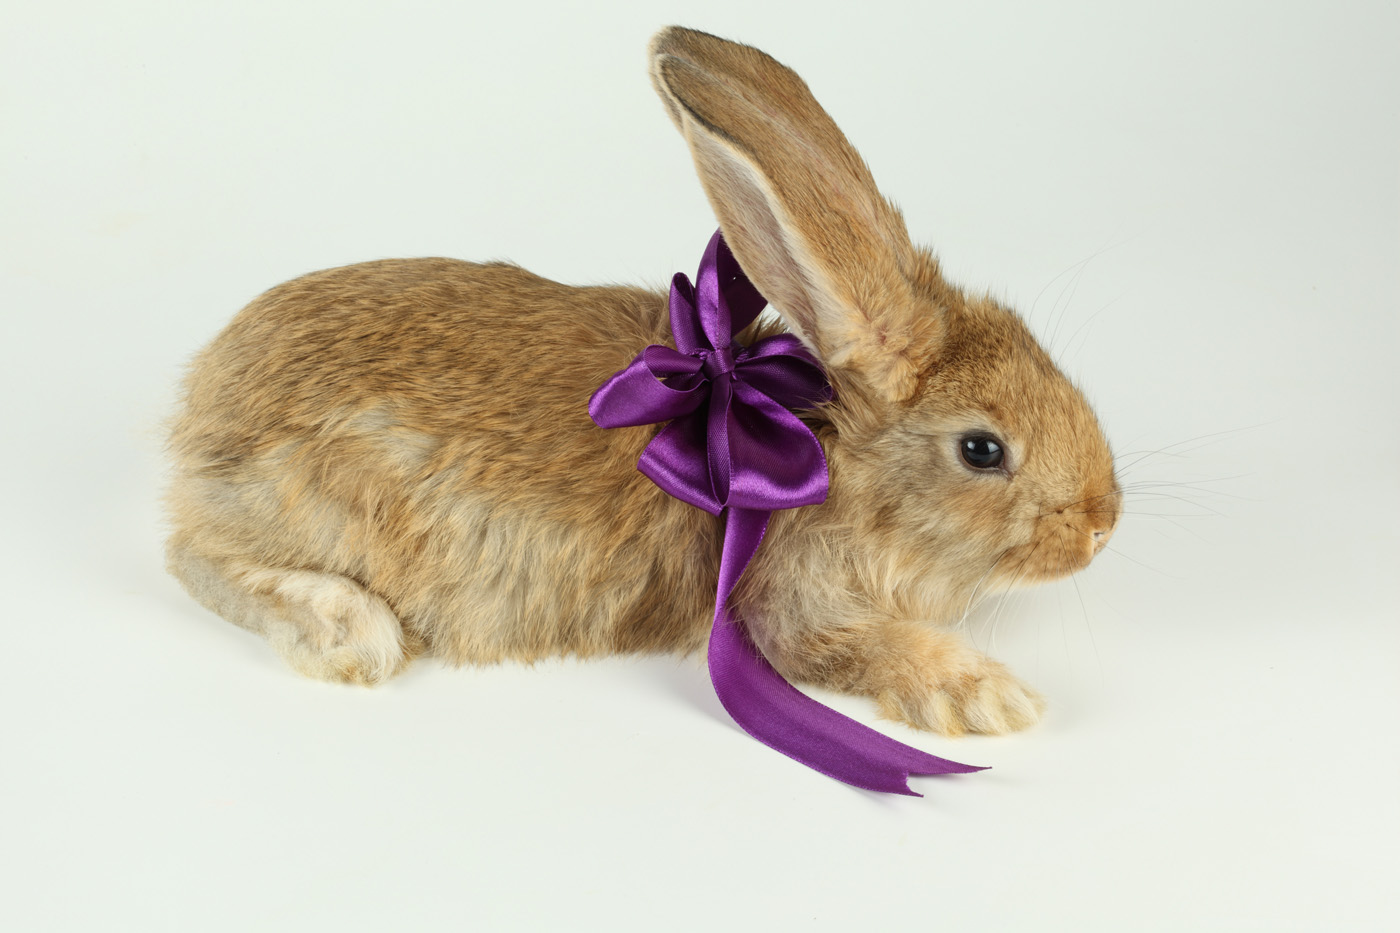 Cute rabbit with Ribbon 21047